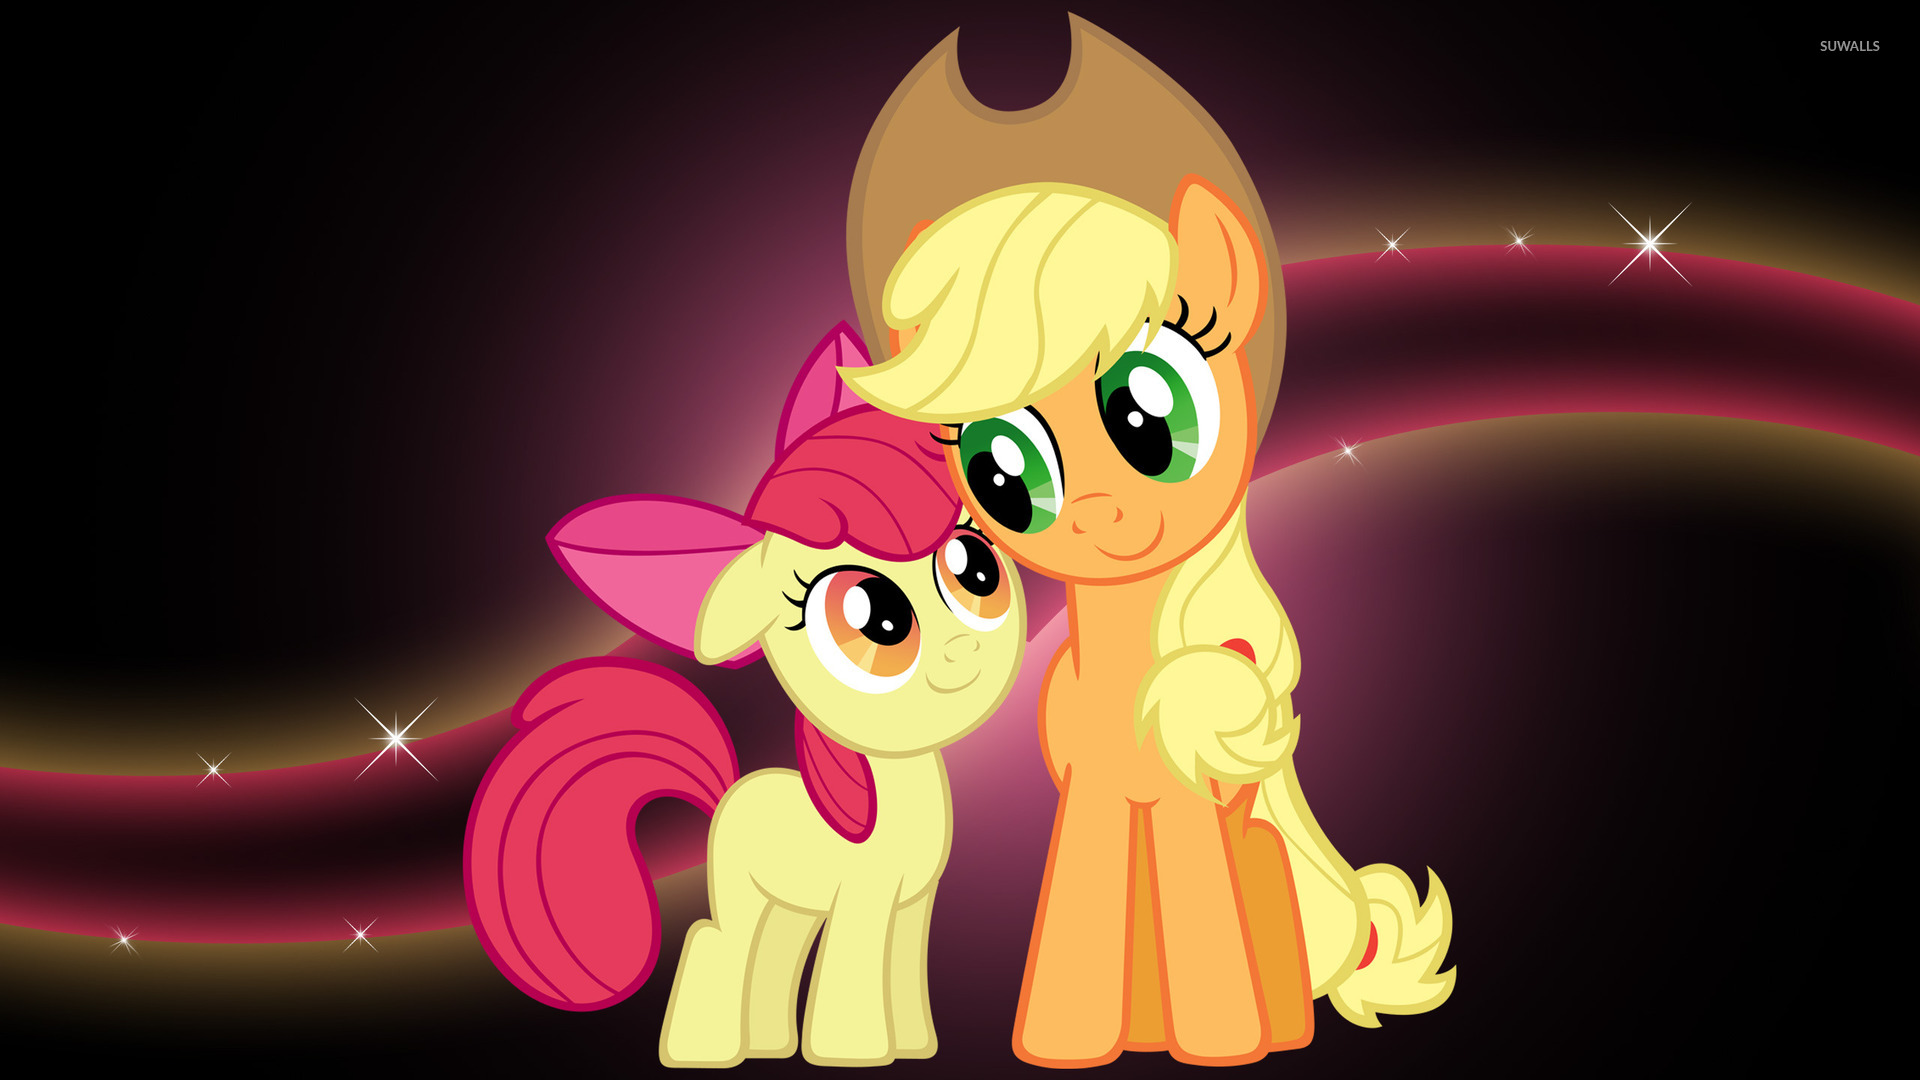 Applejack and Applebloom wallpaper   Cartoon wallpapers   10909 1920x1080